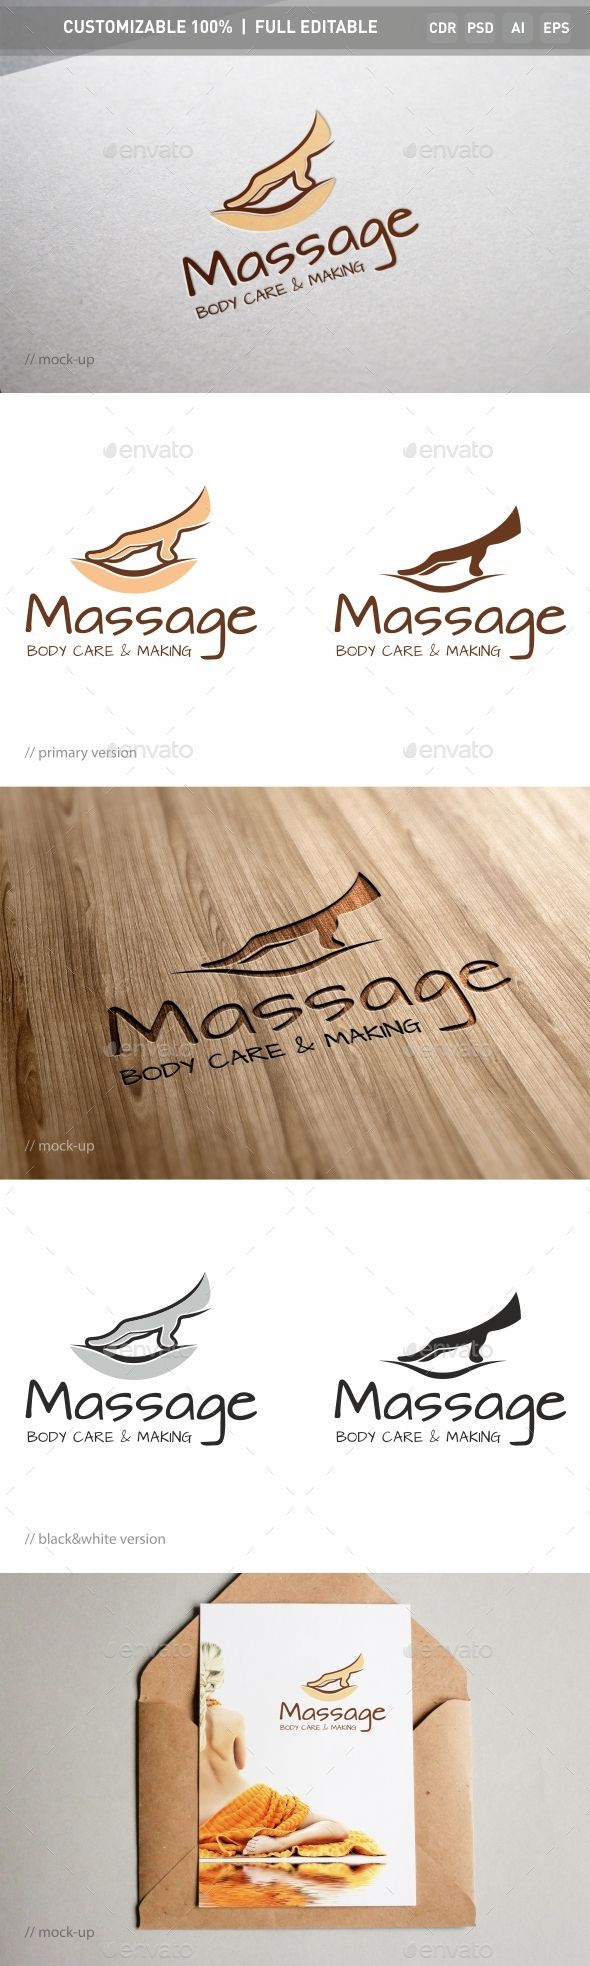 Massage Logo Template — Photoshop PSD #pain #wellness • Available here → https://graphicriver.net/item/massage-logo-template/16421493?ref=pxcr